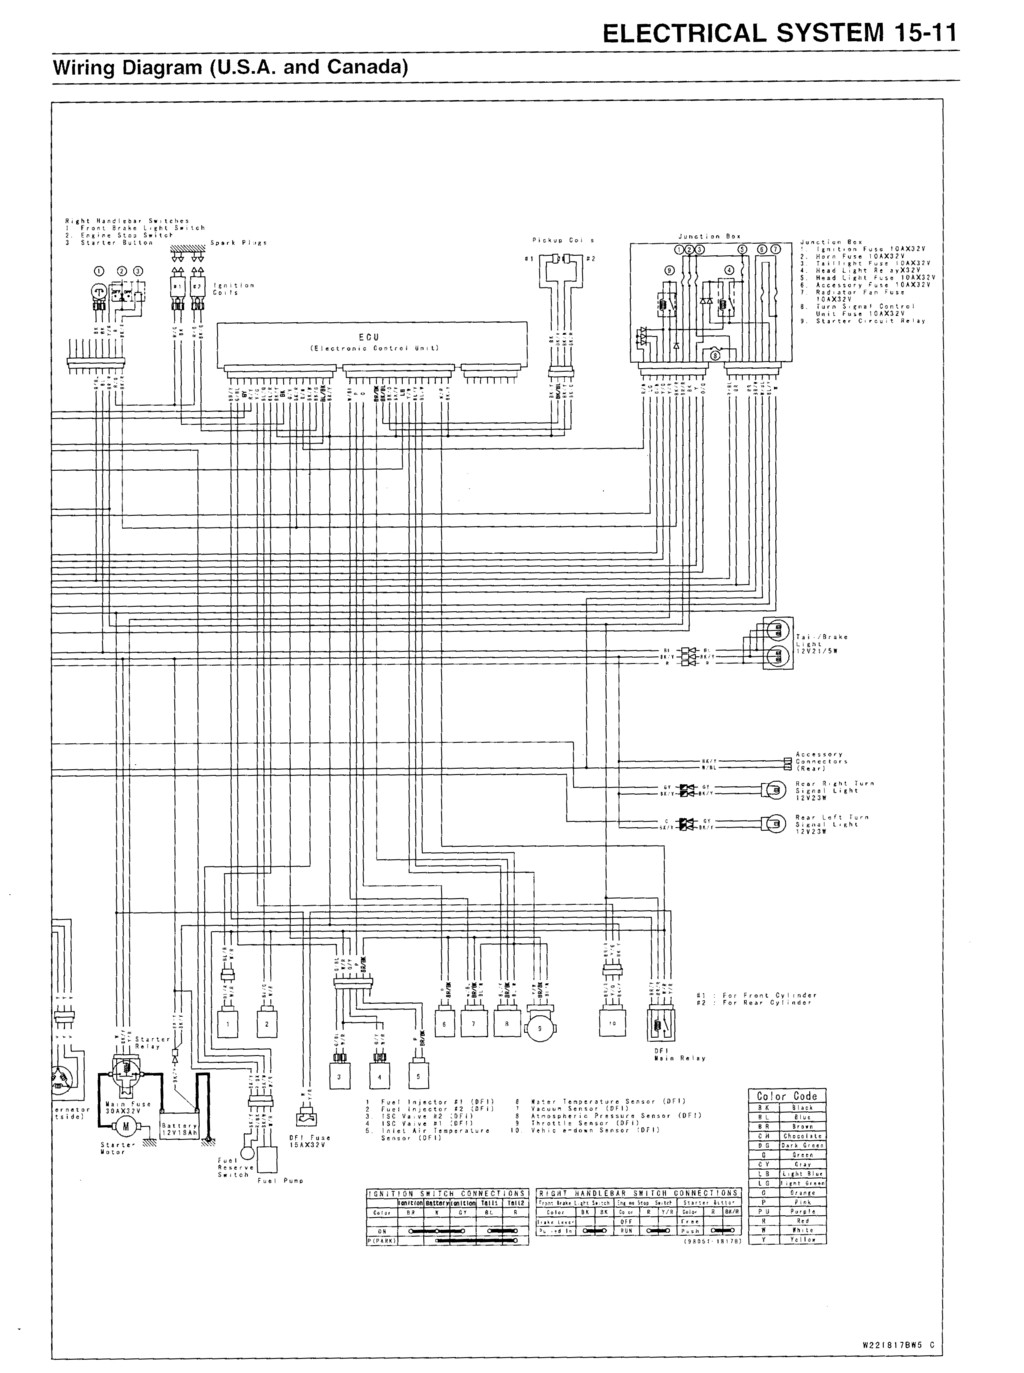 Plan Wiring Diagram On Wiring Diagram For Honeywell Frost Stat